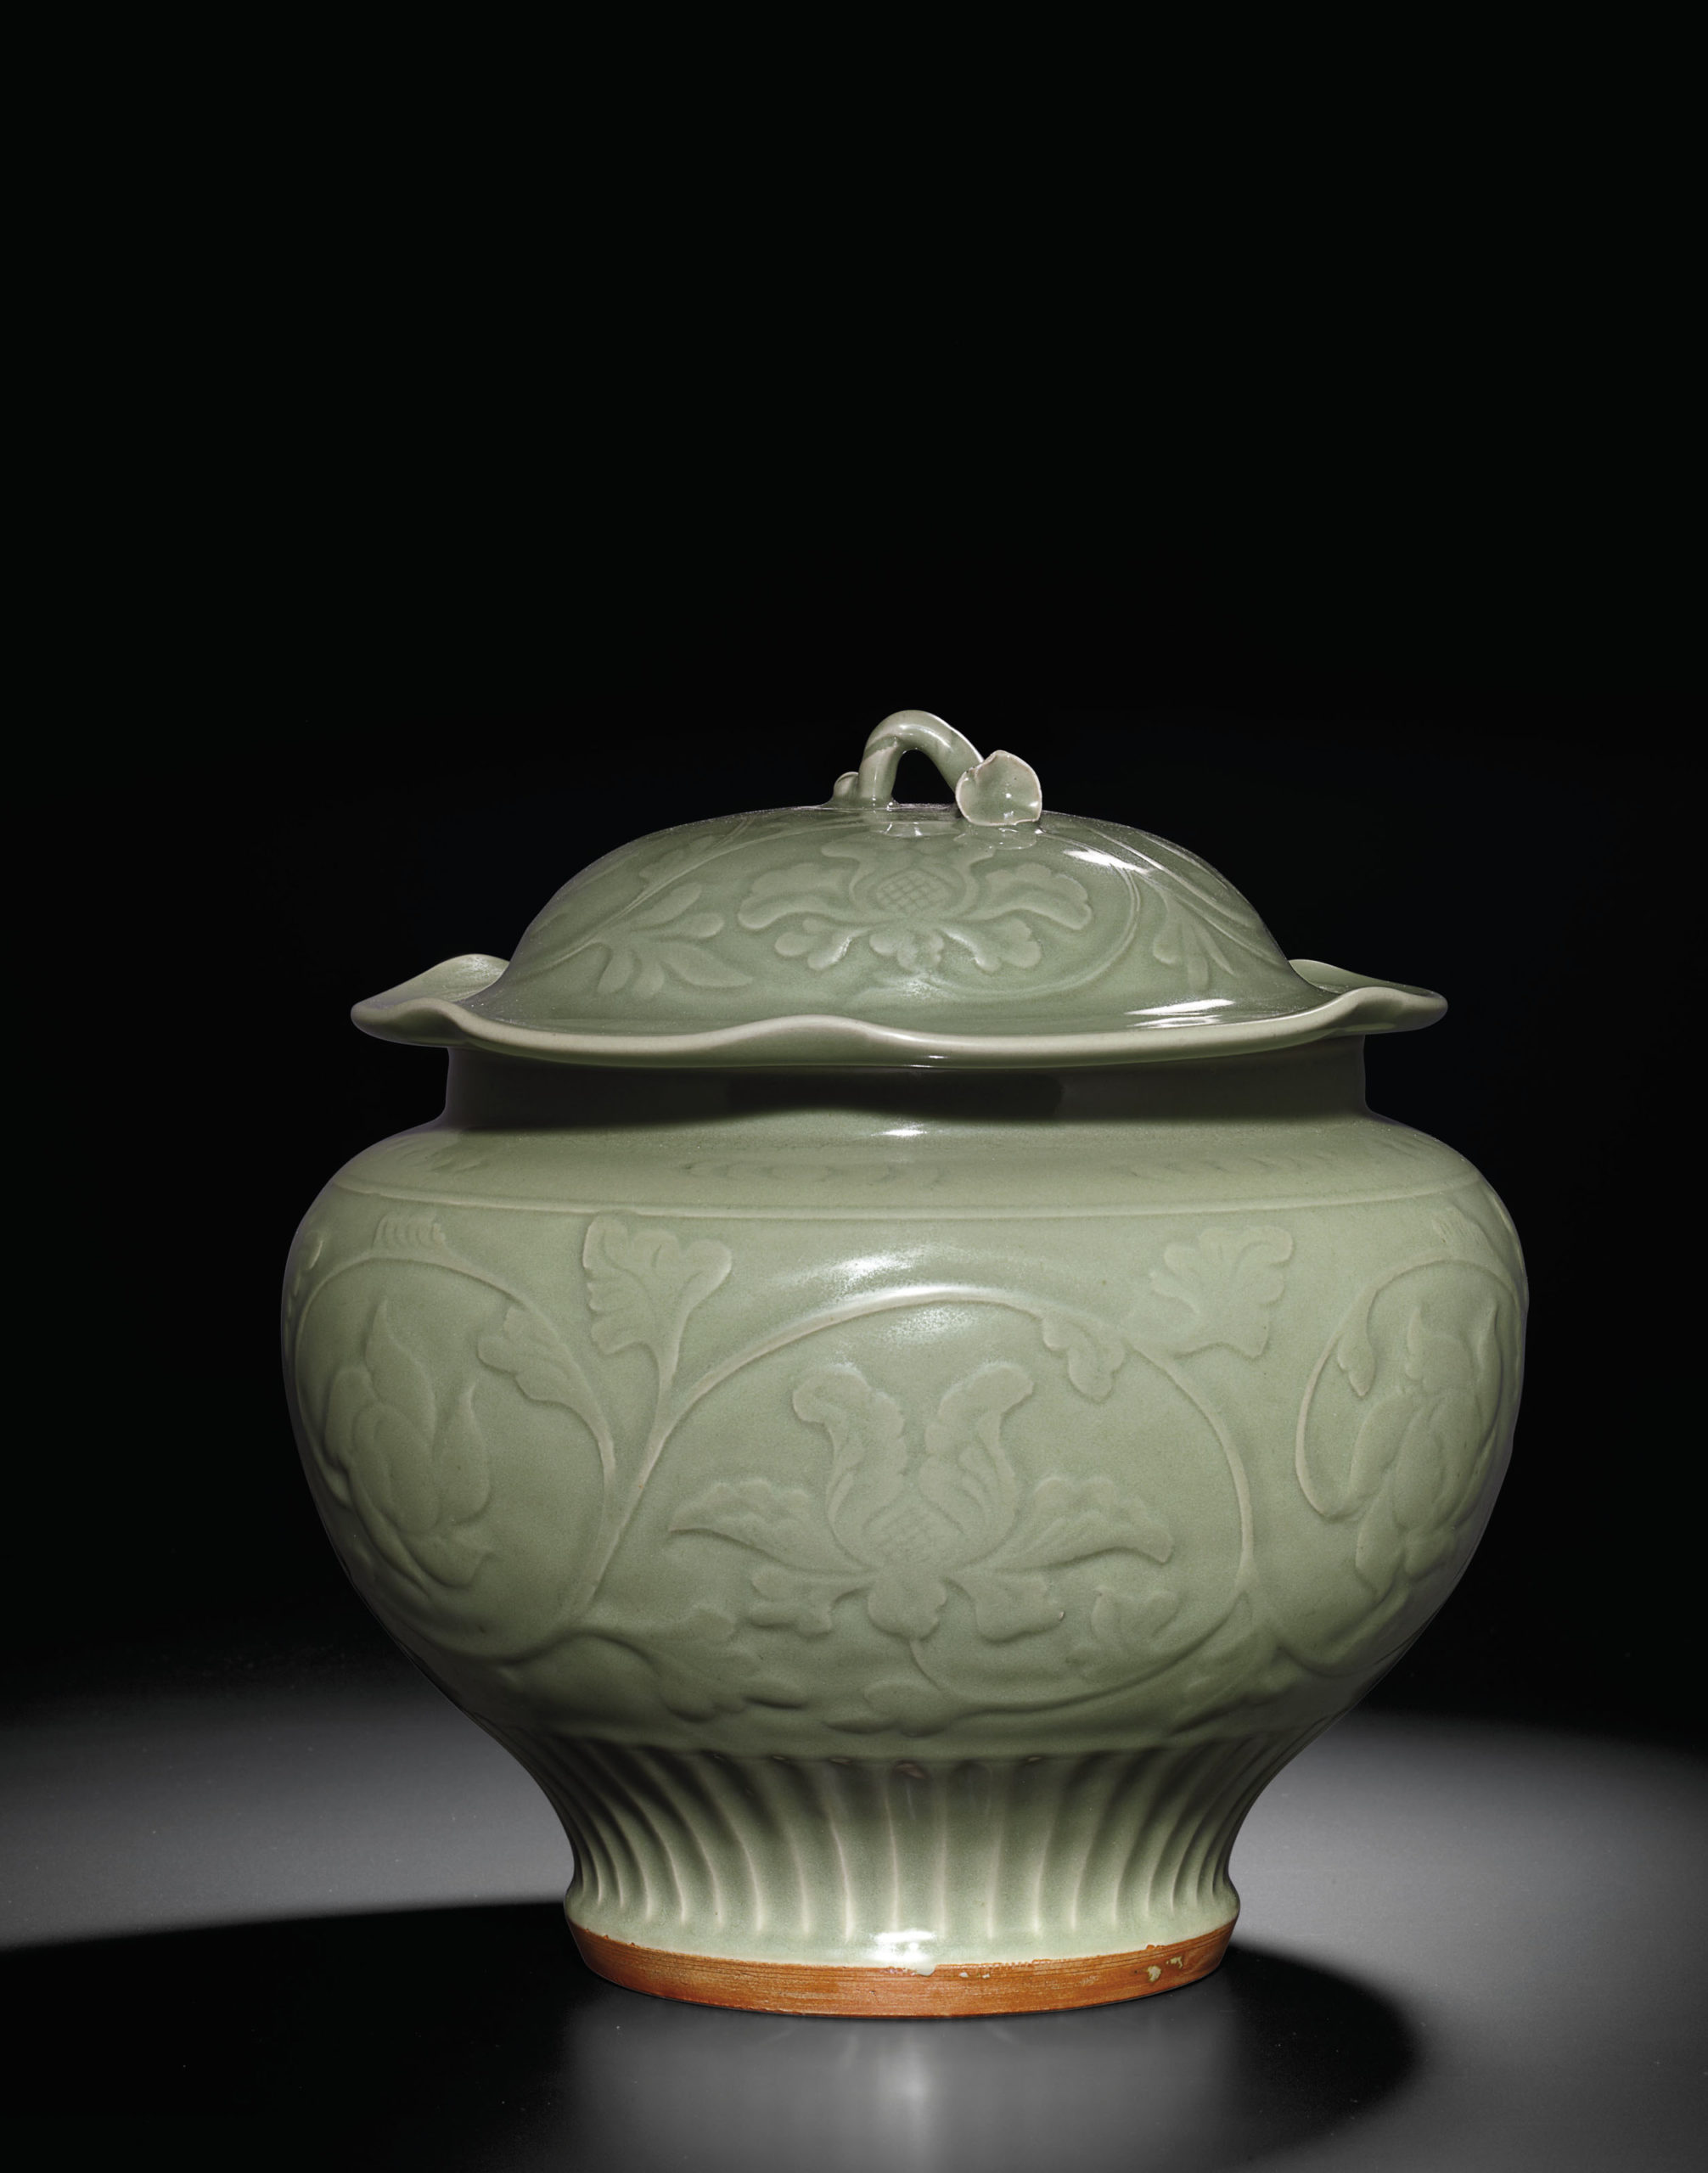 A carved Longquan celadon jar and cover, Yuan/early Ming dynasty, Dimensions: 35.3cm high